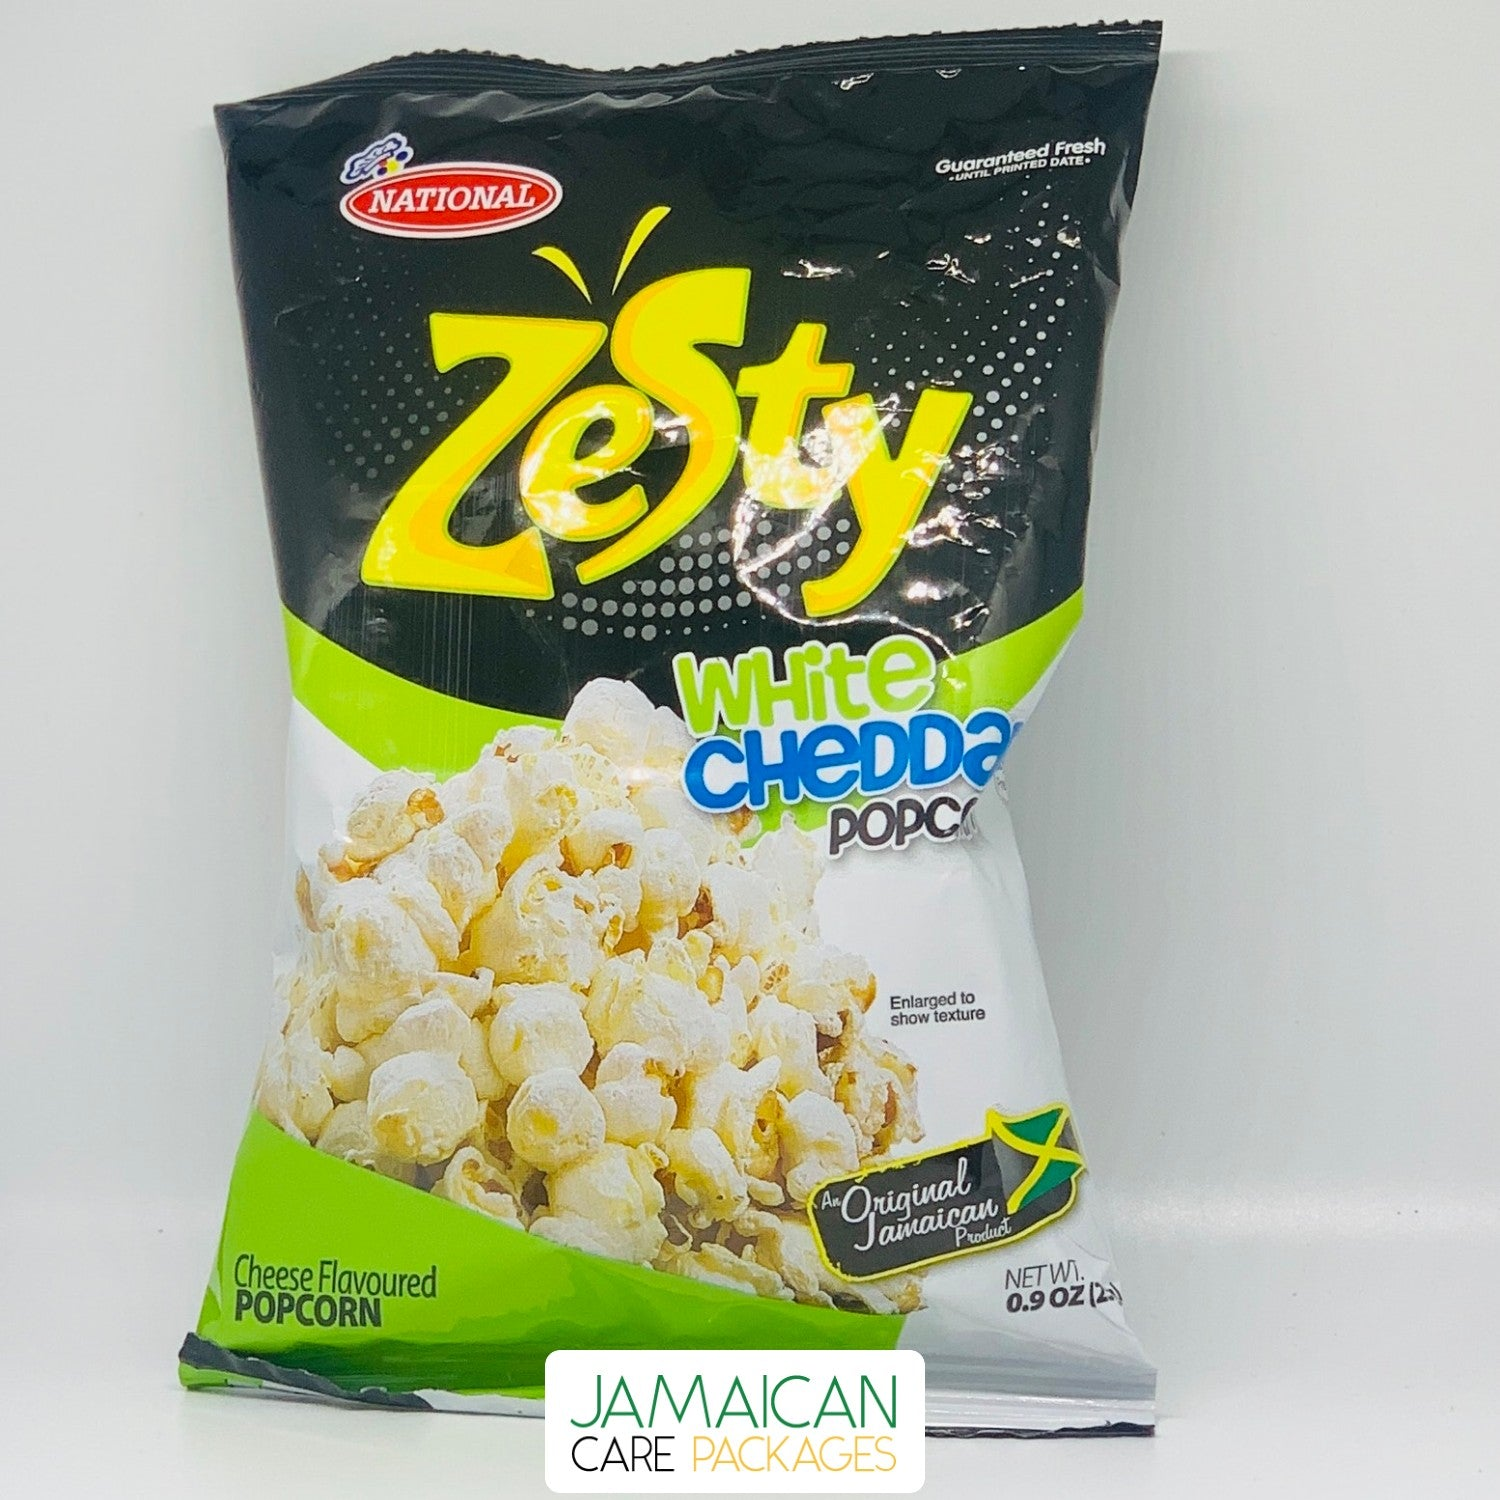 Zesty - Cheddar Popcorn (Bundle of 2)